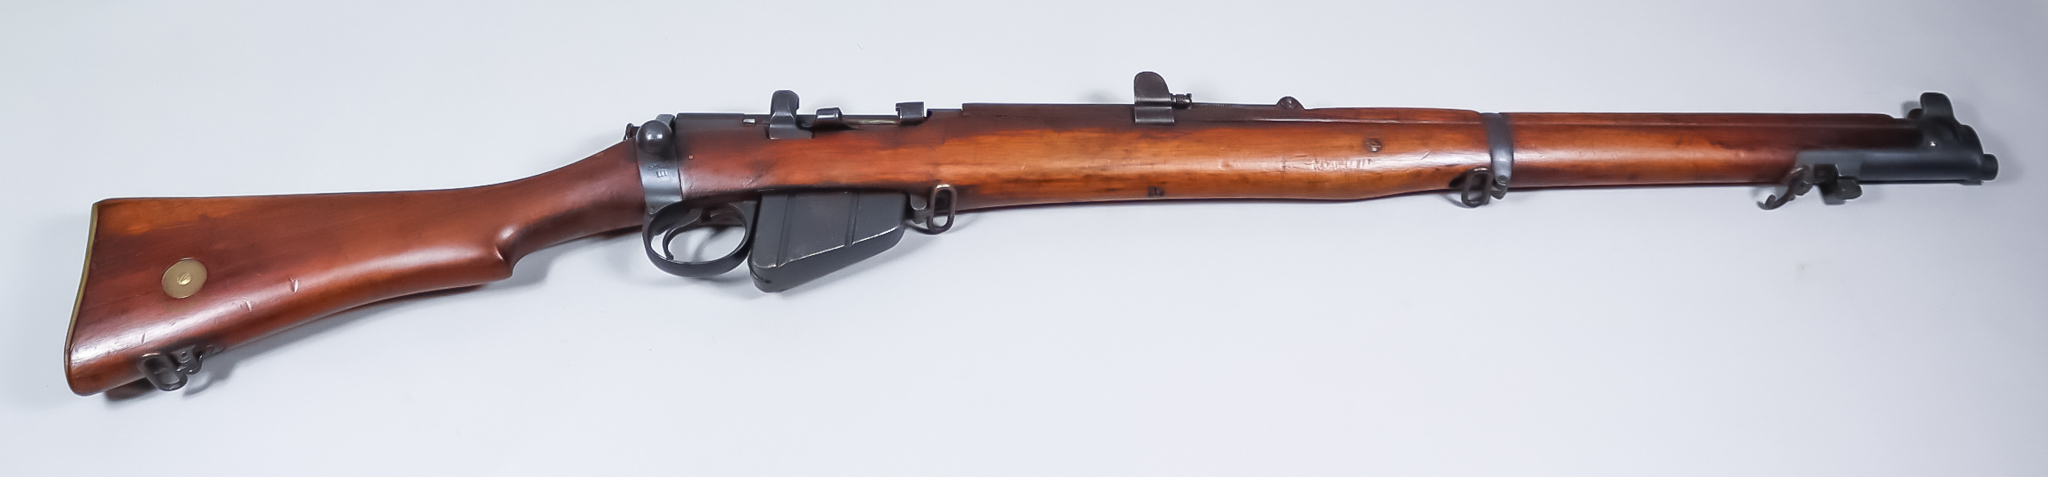 A .303 Calibre Bolt Action Rifle by Lee Enfield,shot magazine MKIII, (1911), Serial No. 4002,